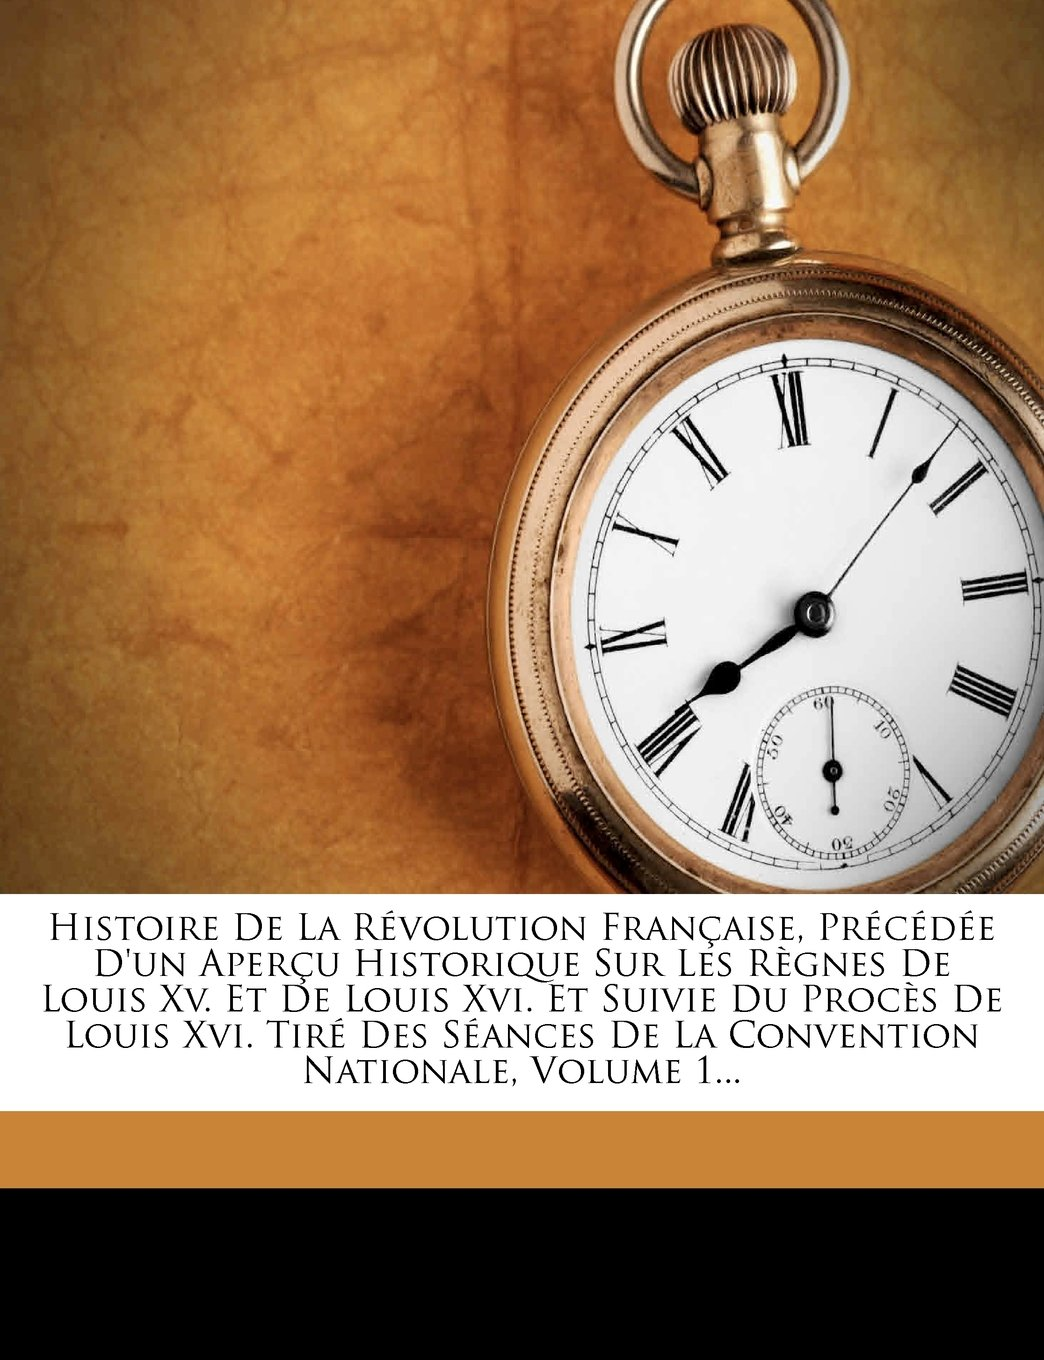 Read Online Histoire De La Révolution Française, Précédée D'un Aperçu Historique Sur Les Règnes De Louis Xv. Et De Louis Xvi. Et Suivie Du Procès De Louis Xvi. ... Nationale, Volume 1... (French Edition) ebook